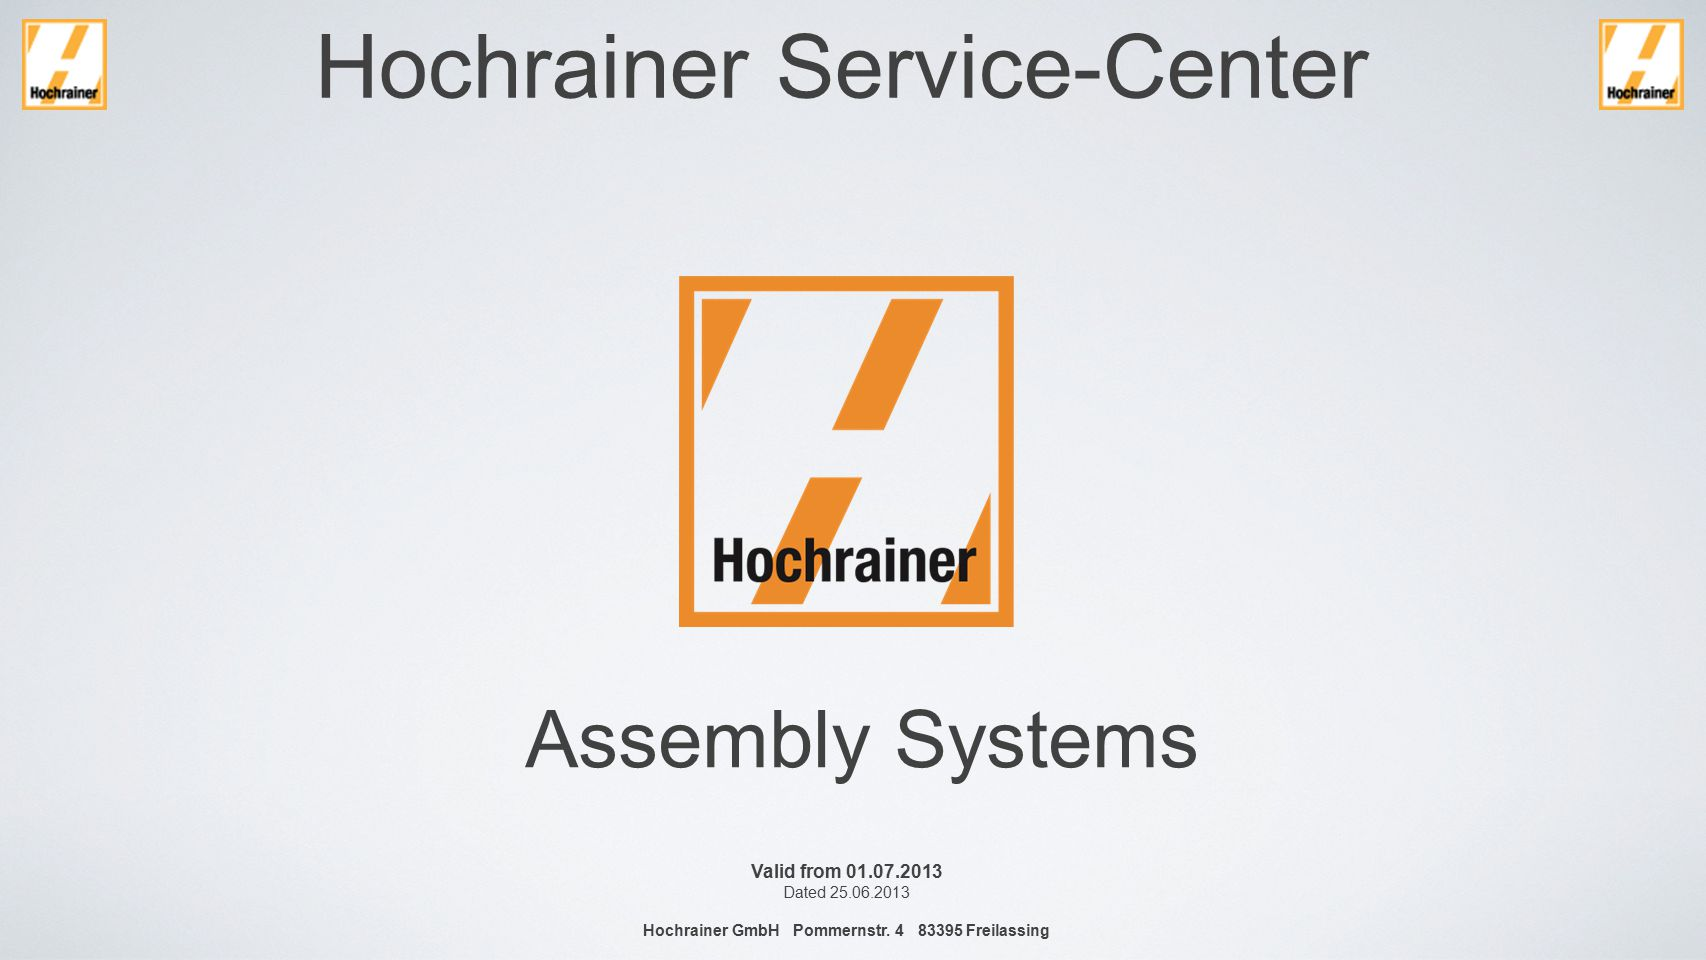 Hochrainer Service-Center Assembly Systems Valid from 01.07.2013 Dated 25.06.2013 Hochrainer GmbH Pommernstr.